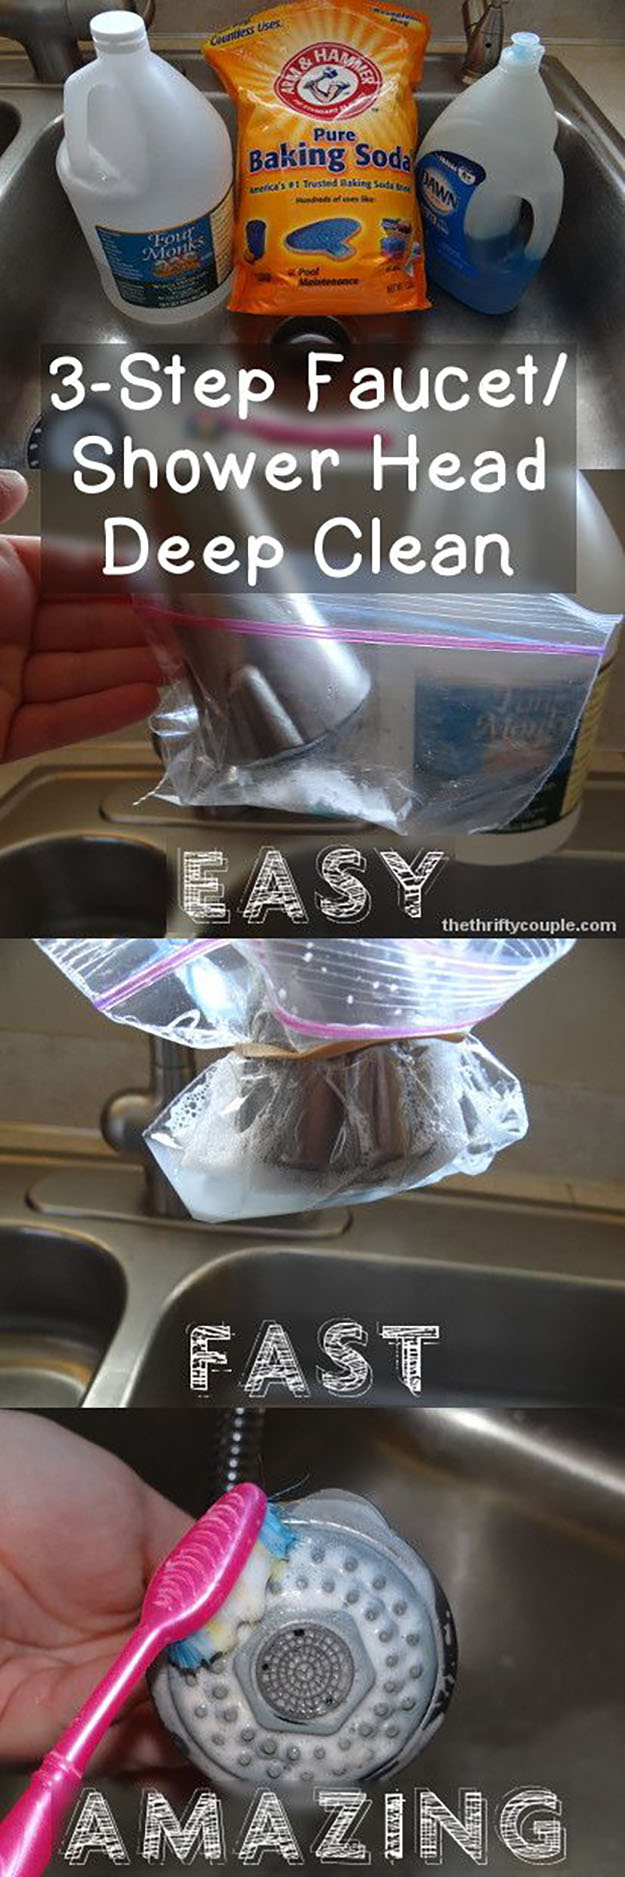 DIY Bathroom Cleaning Hacks | Shower Head Cleaning Tips and Tricks | DIY Projects & Crafts by DIY JOY at http://diyjoy.com/cleaning-tips-life-hacks